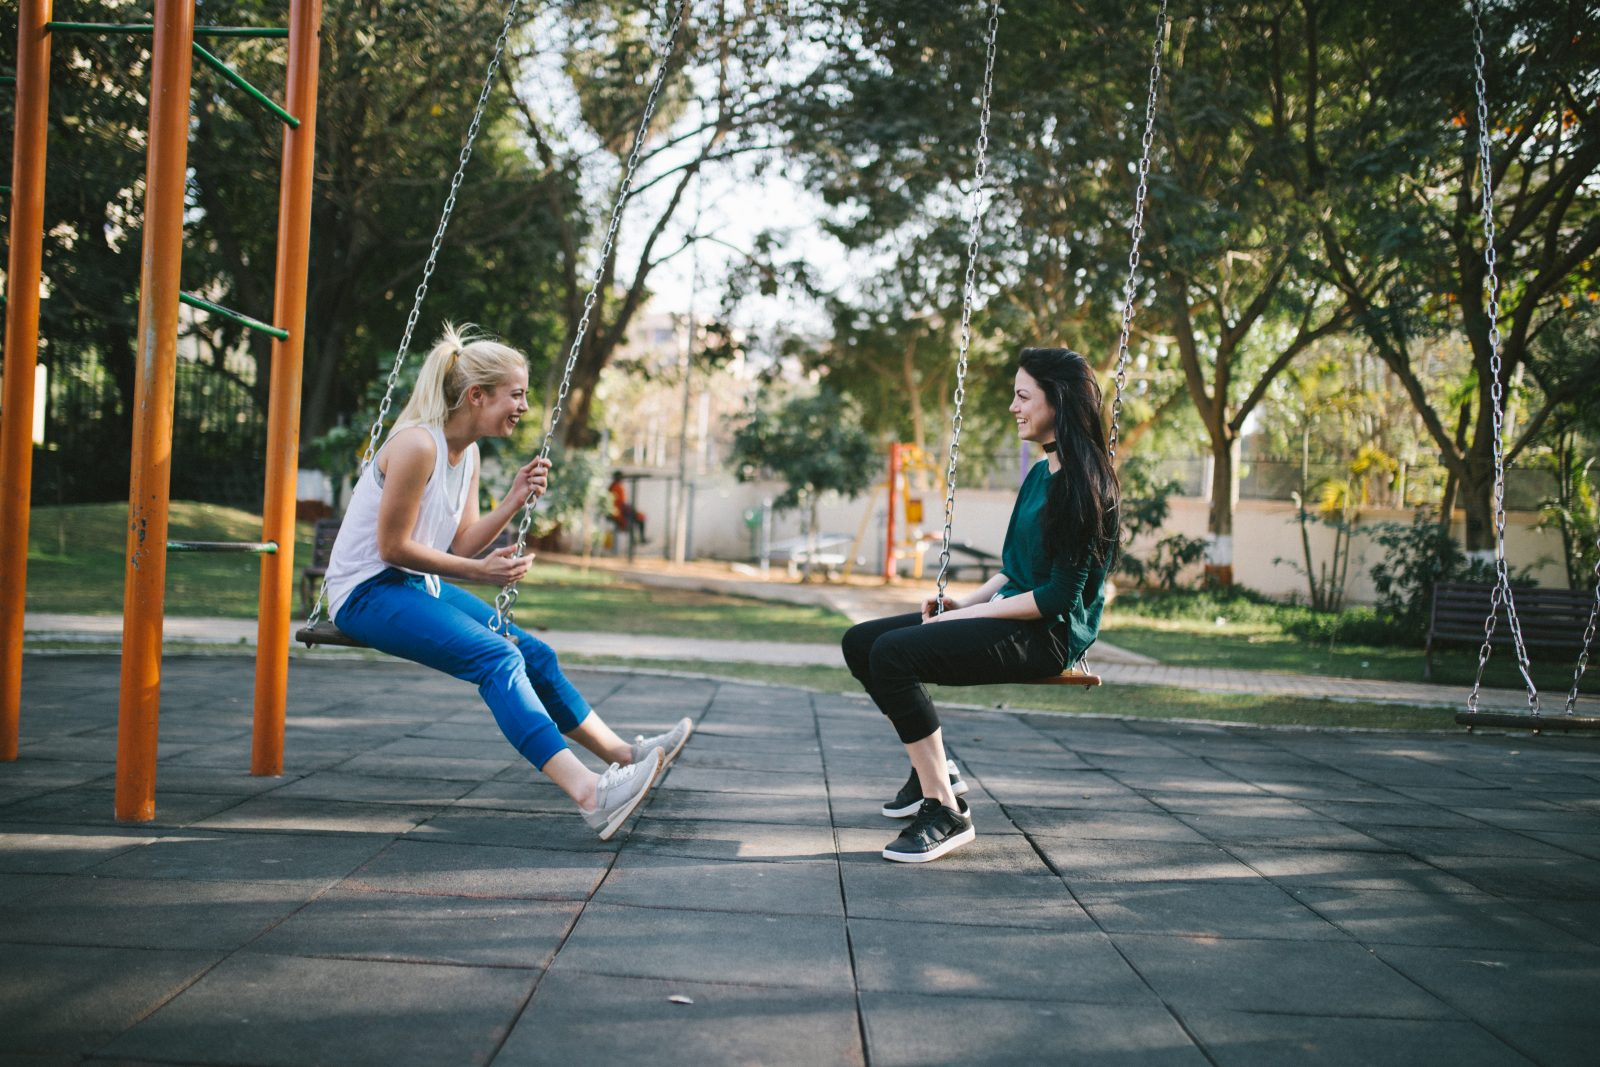 Two women laughing on swings